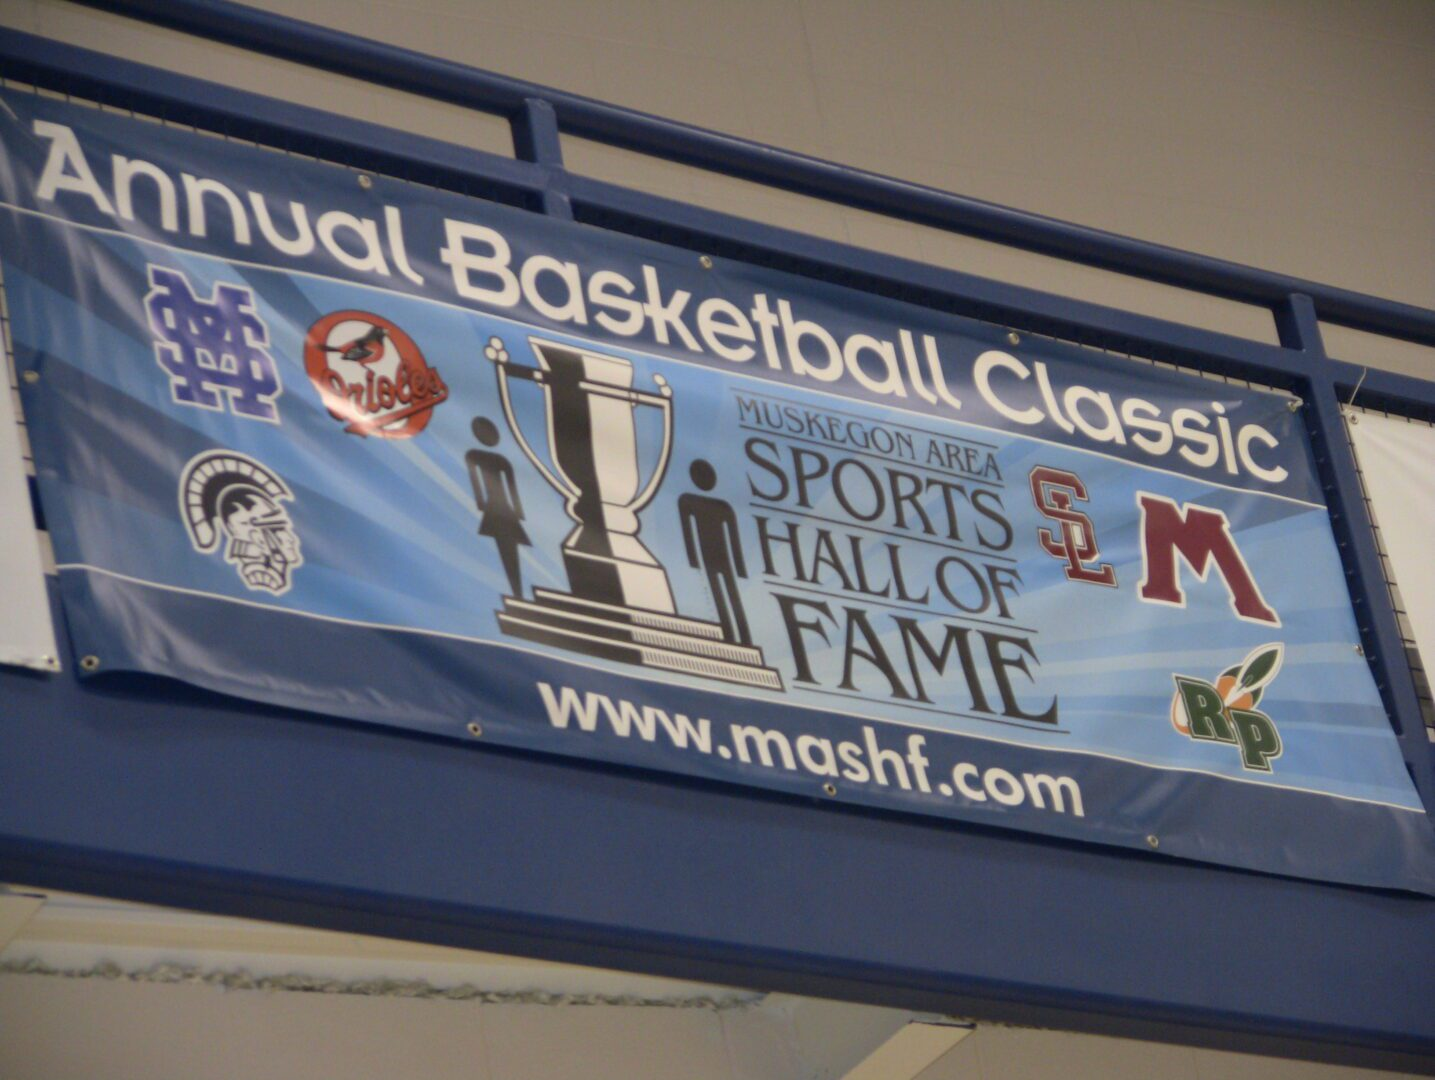 12th annual Meijer Hall of Fame Classic sets sight on weekend at Reeths-Puffer